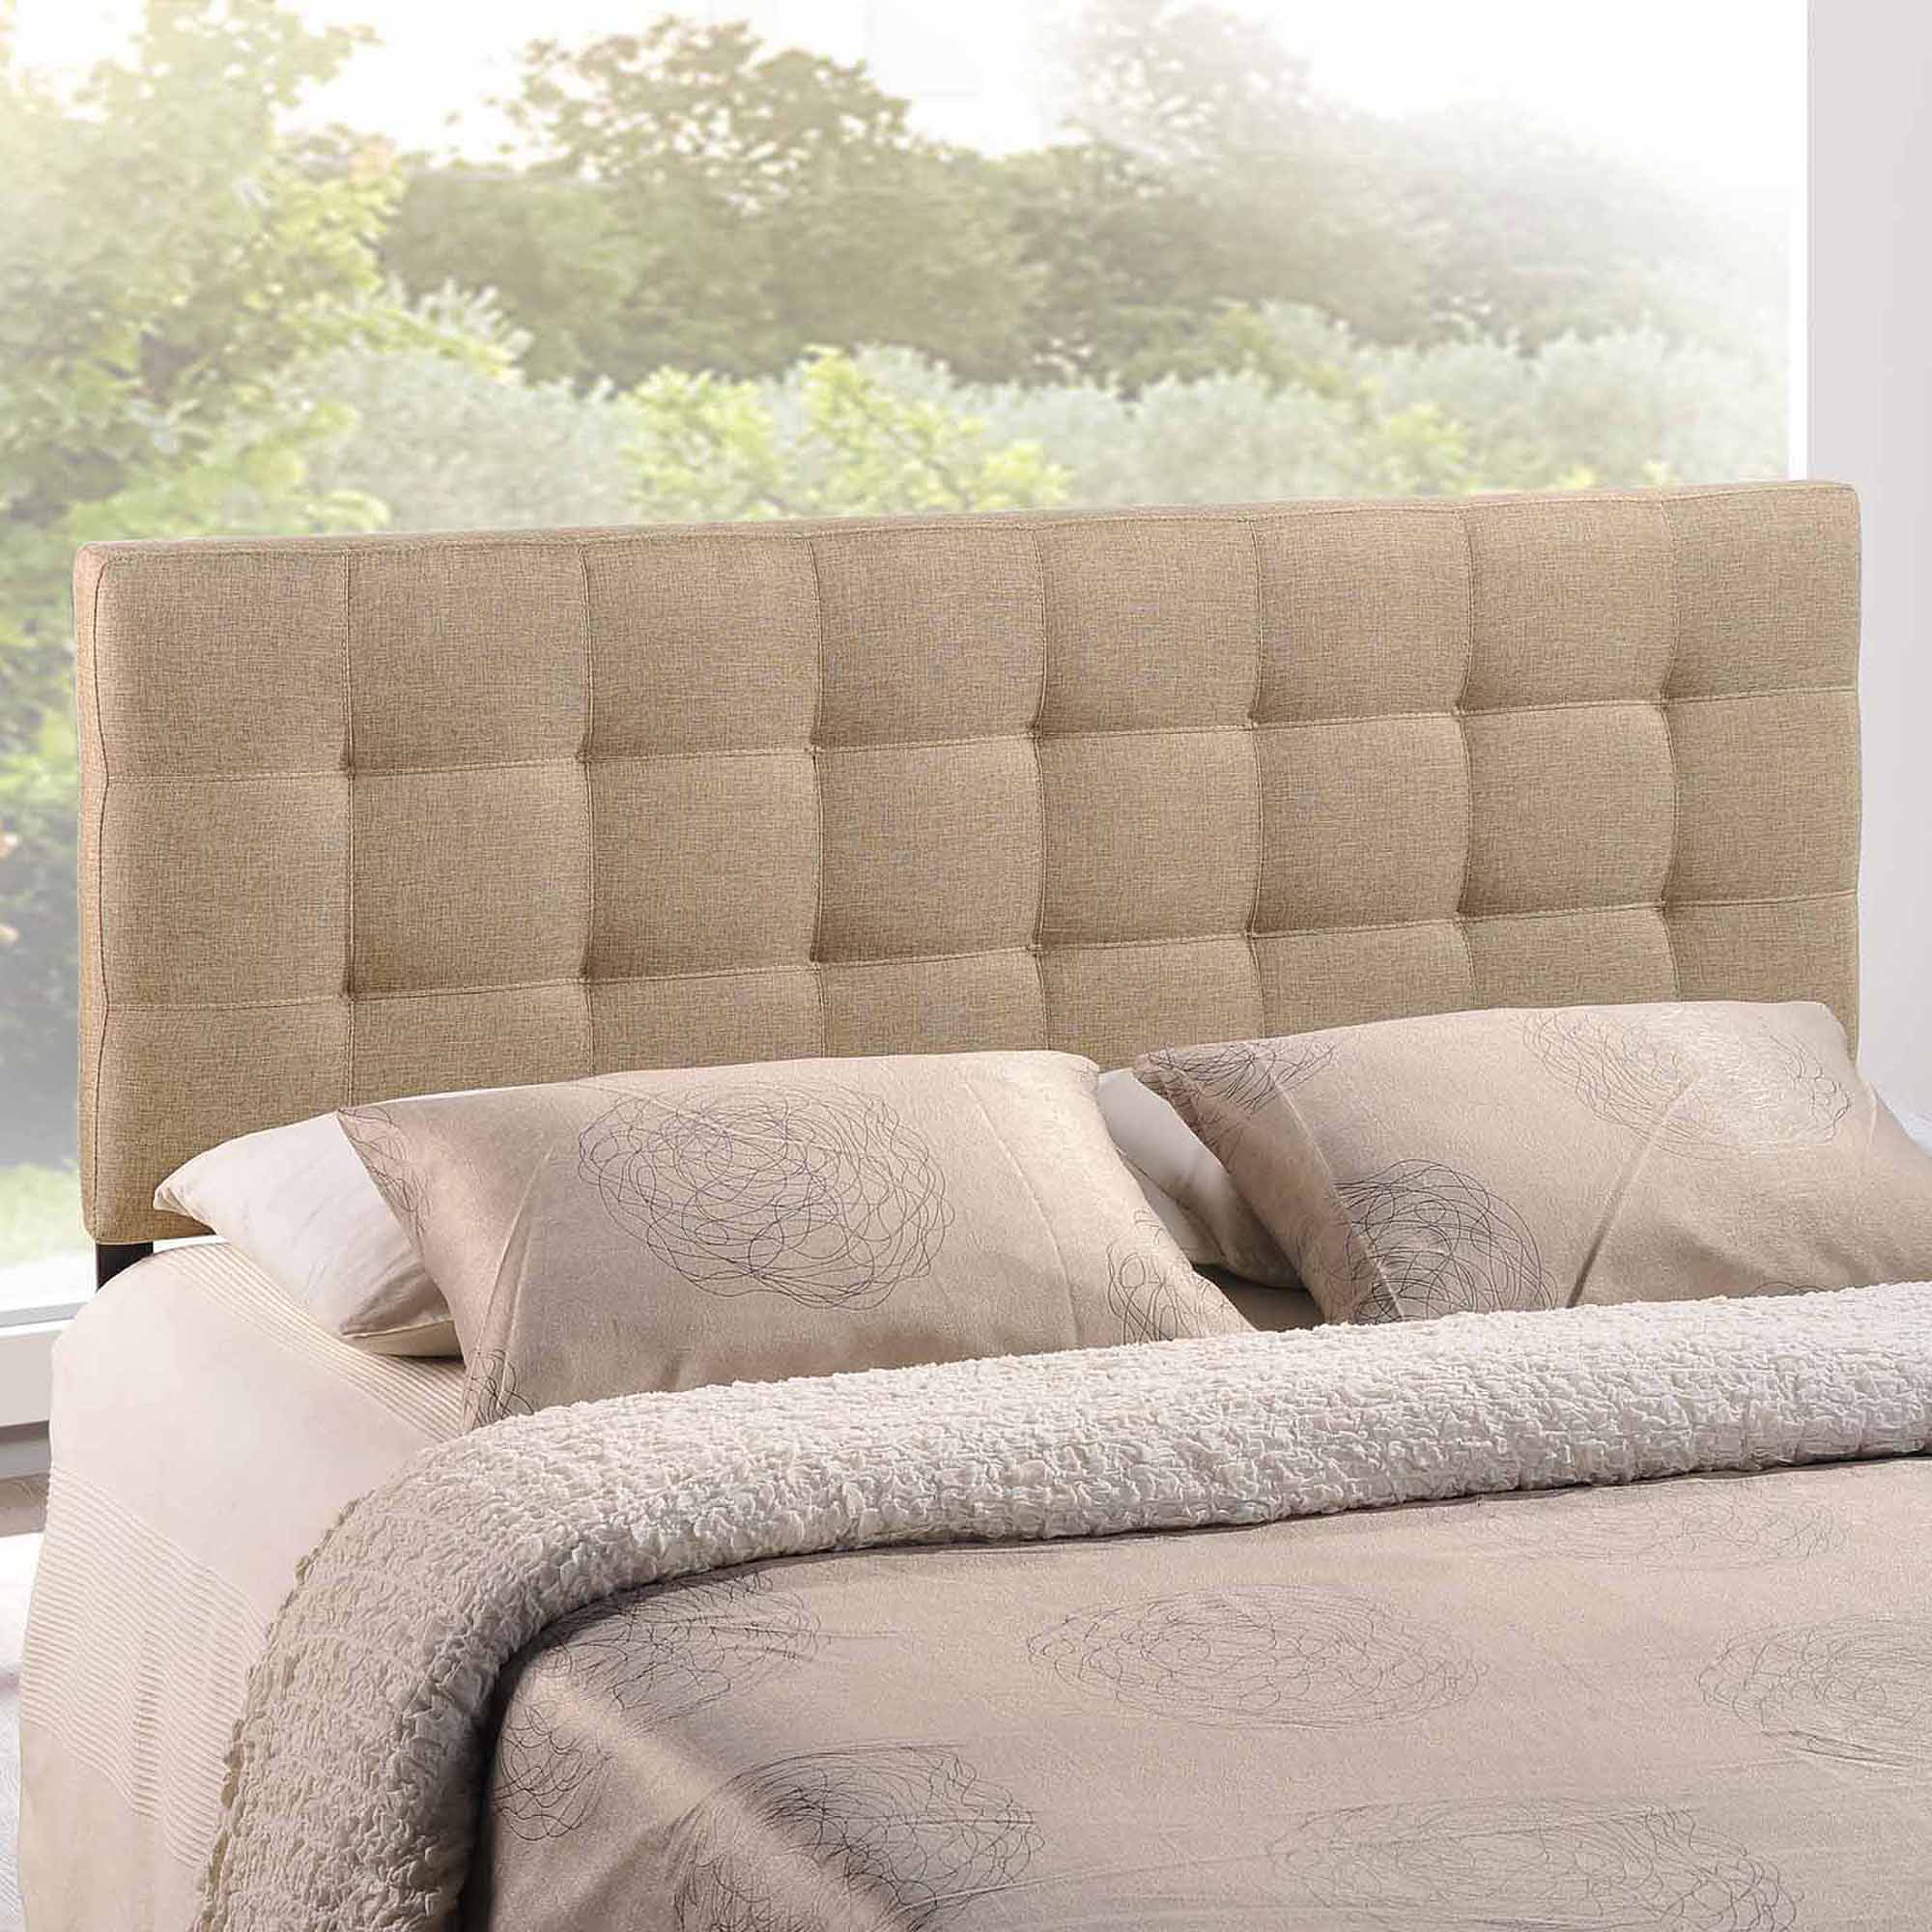 with frame for rugs how as bedroom large bed diy king wood designs a tufted cheap headboards headboard upholstered furniture wells make walls ideas queen and images